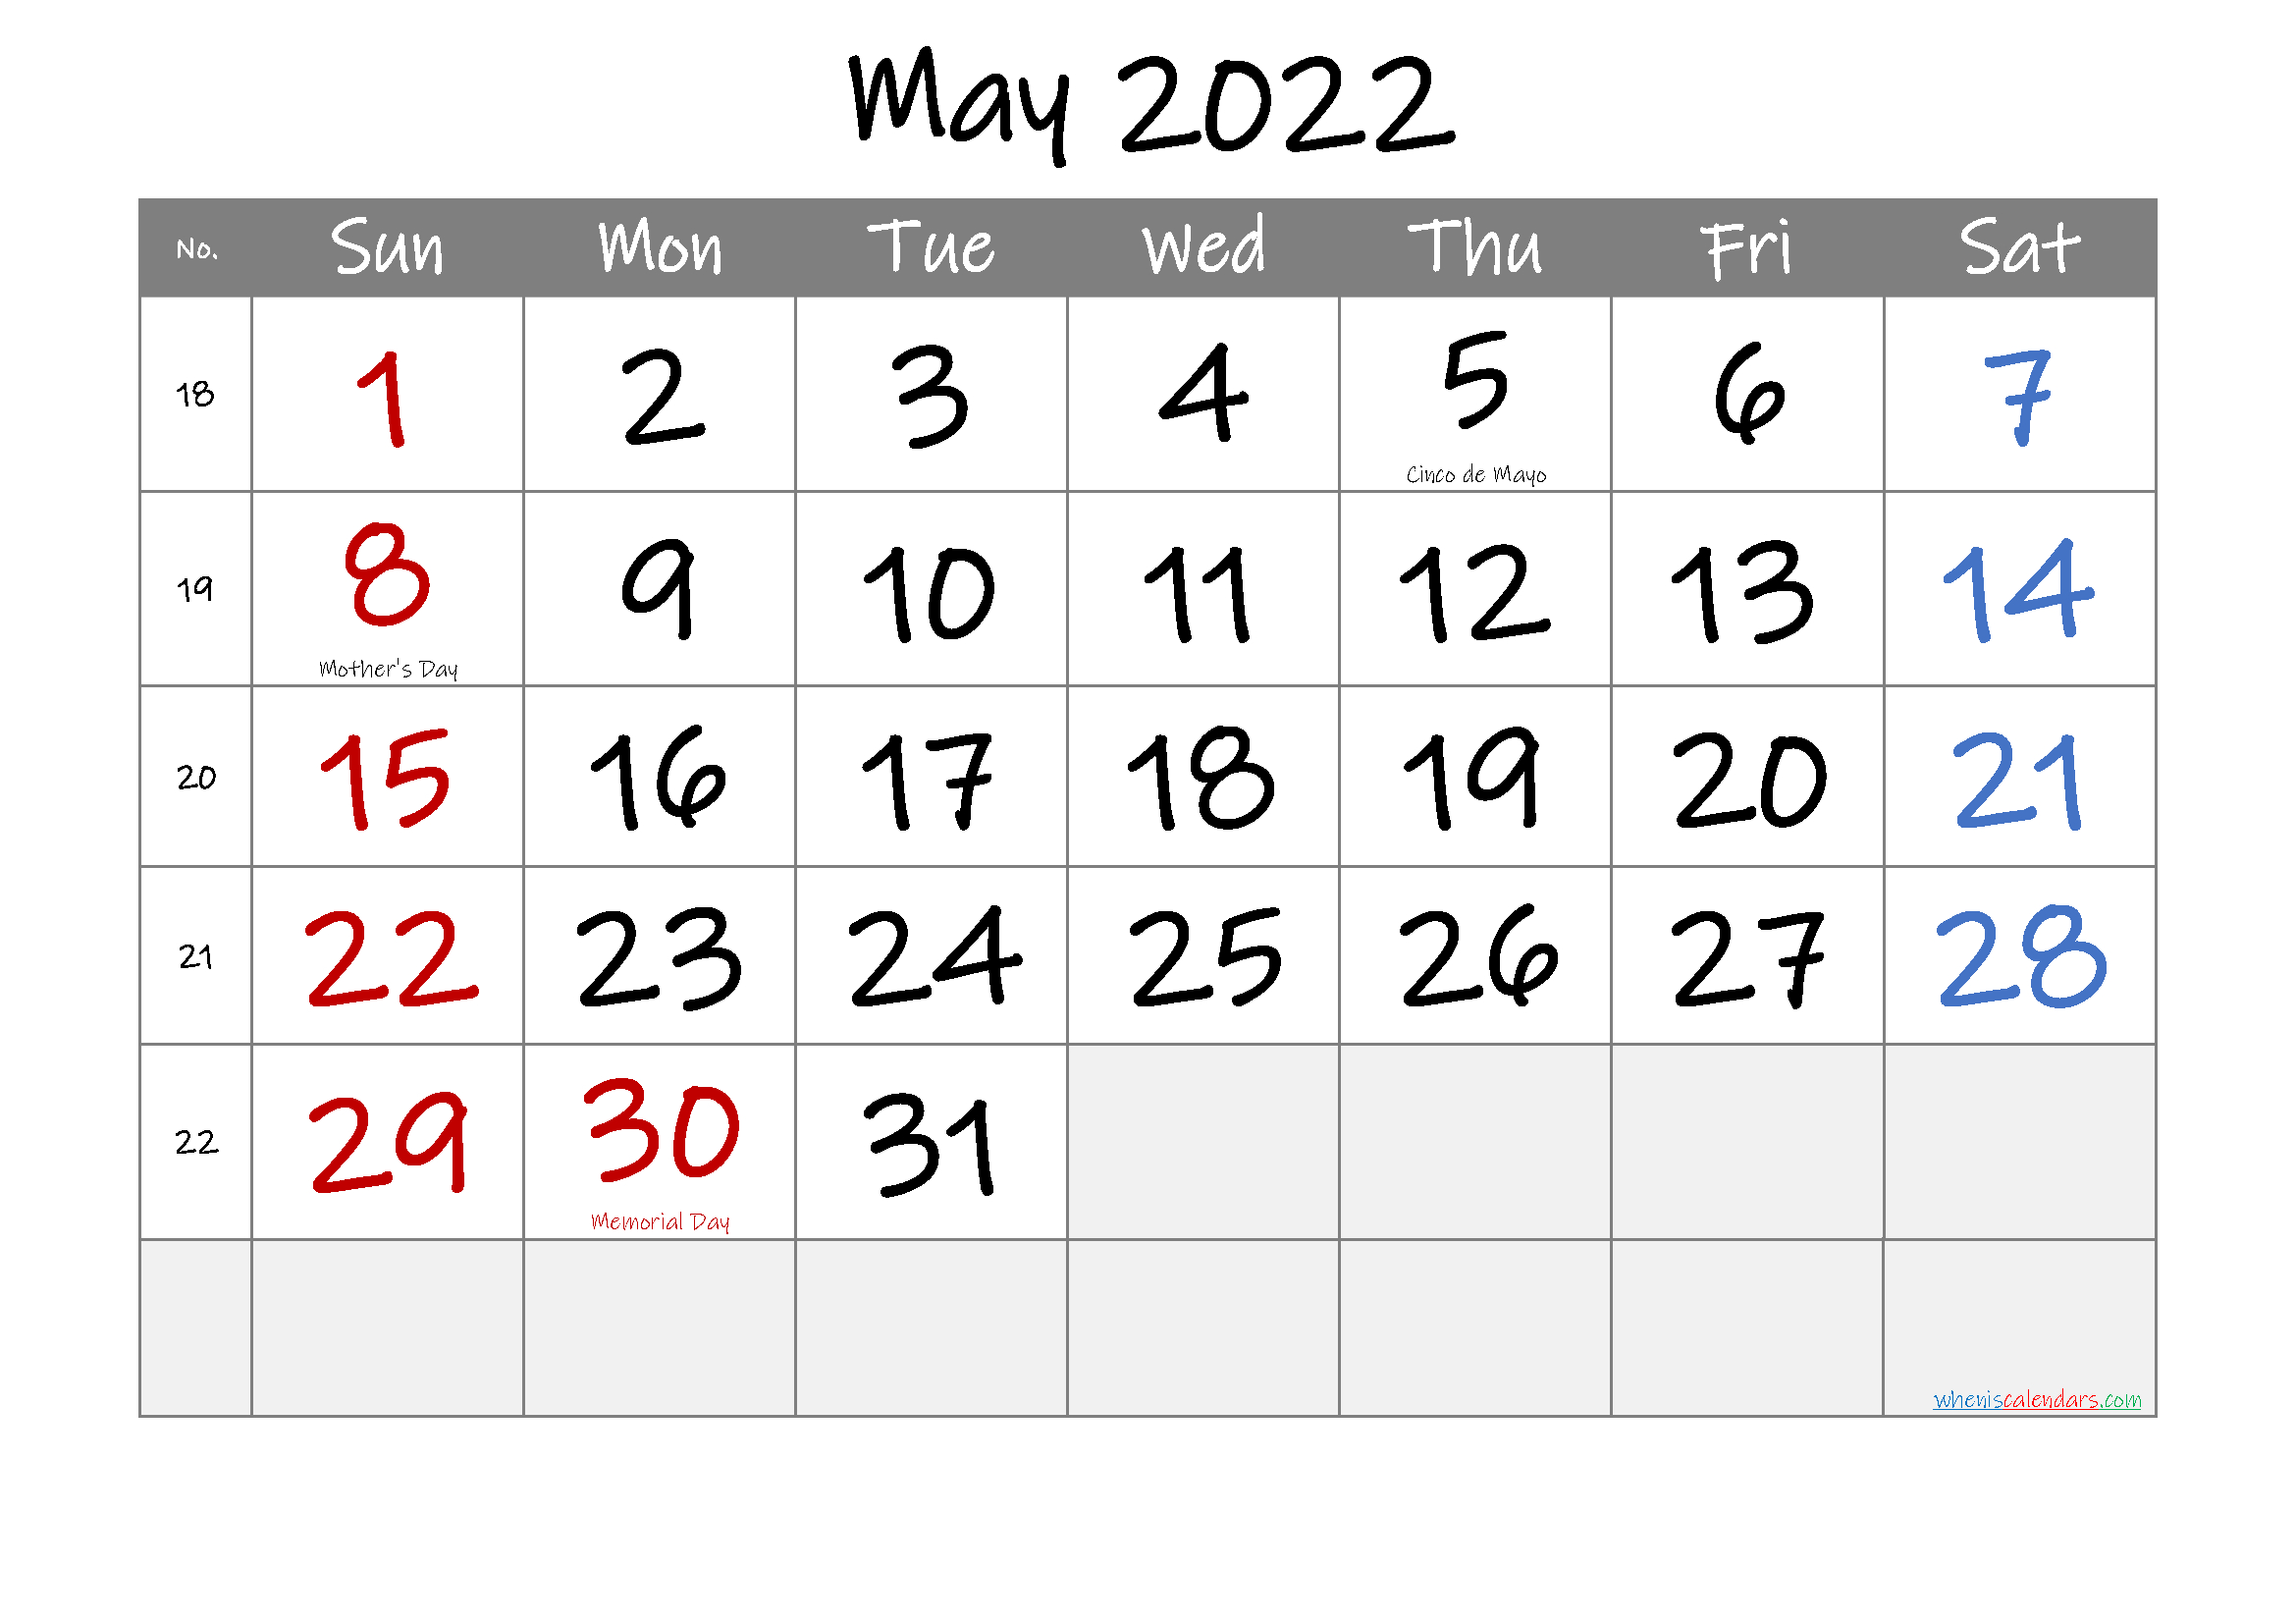 May 2022 Free Printable Calendar-Template No.if22M29 - Free Free Printable Calendars 8 Week